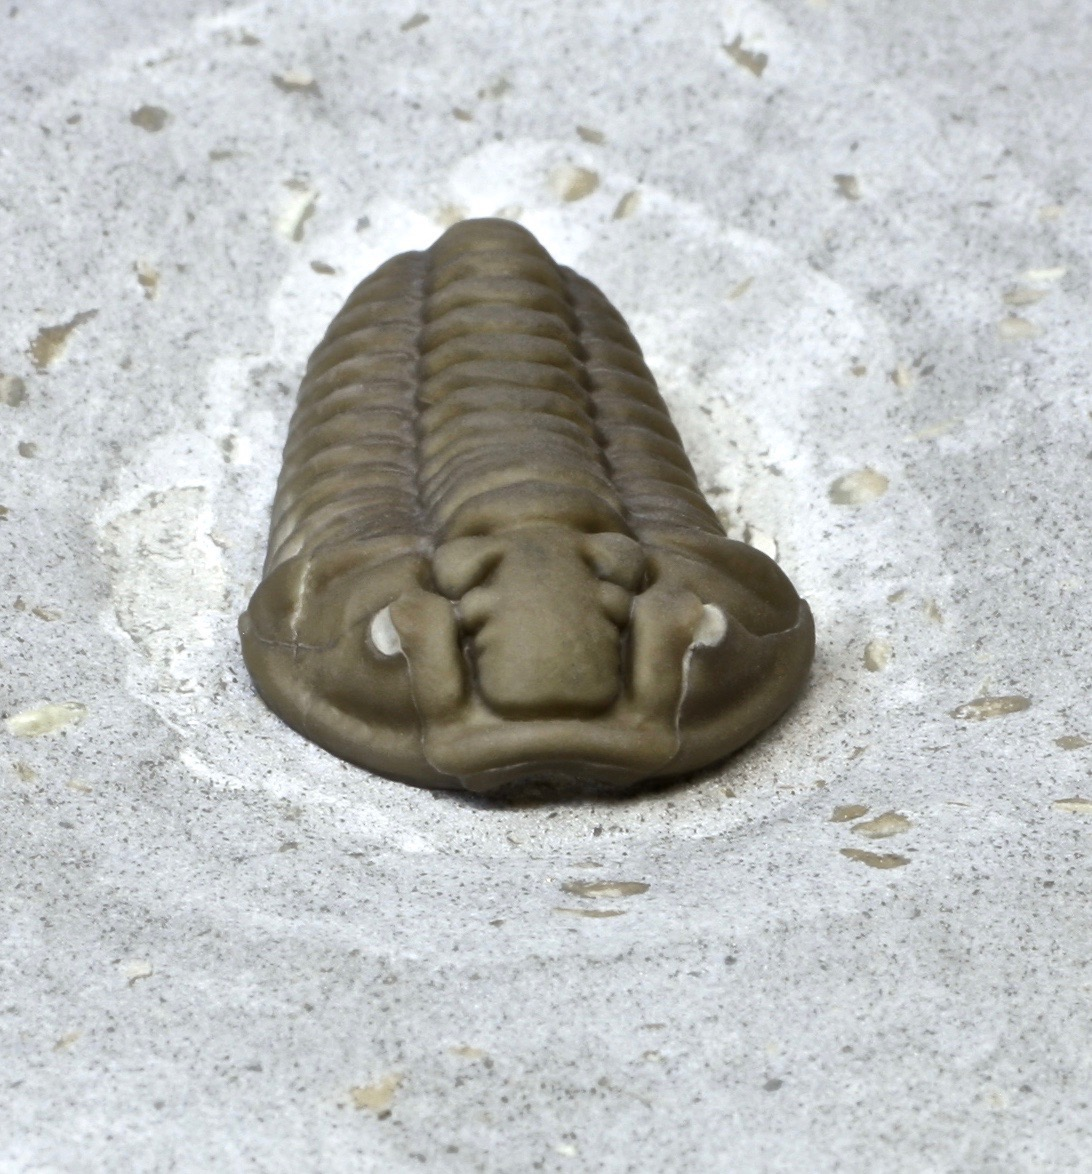 Fossil of the trilobite Calymene gamachei atop matrix